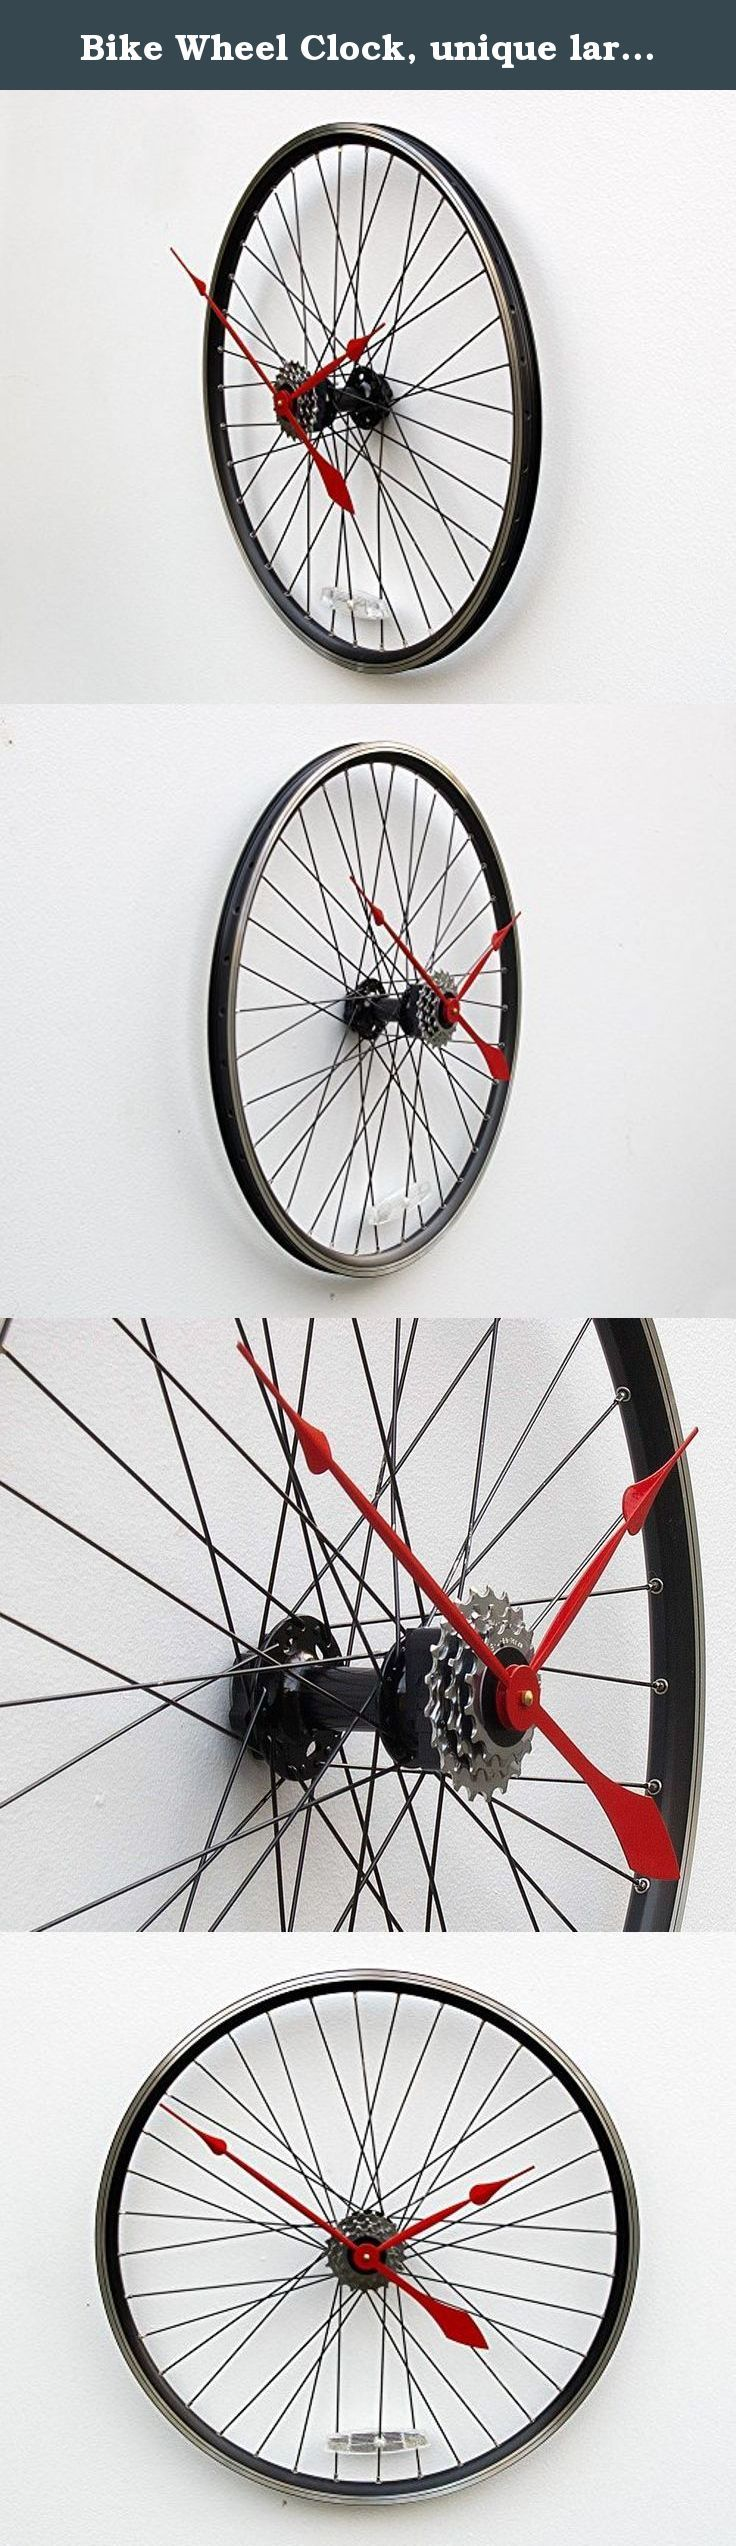 Bike Wheel Clock, unique large wall clock, bike clock, bicycle wheel clock, industrial wall clock, cyclist clock, upcycled bike parts clock, gift for him, gift for her. This clock was created from a recycled aluminum bike wheel. The wheel mounts directly to the wall through the hub using a hollow wall anchor and gives the illusion that it is floating off the wall. The clock movement is a high torque quartz movement and is attached to a set of rear cassette gears to conceal the movement…